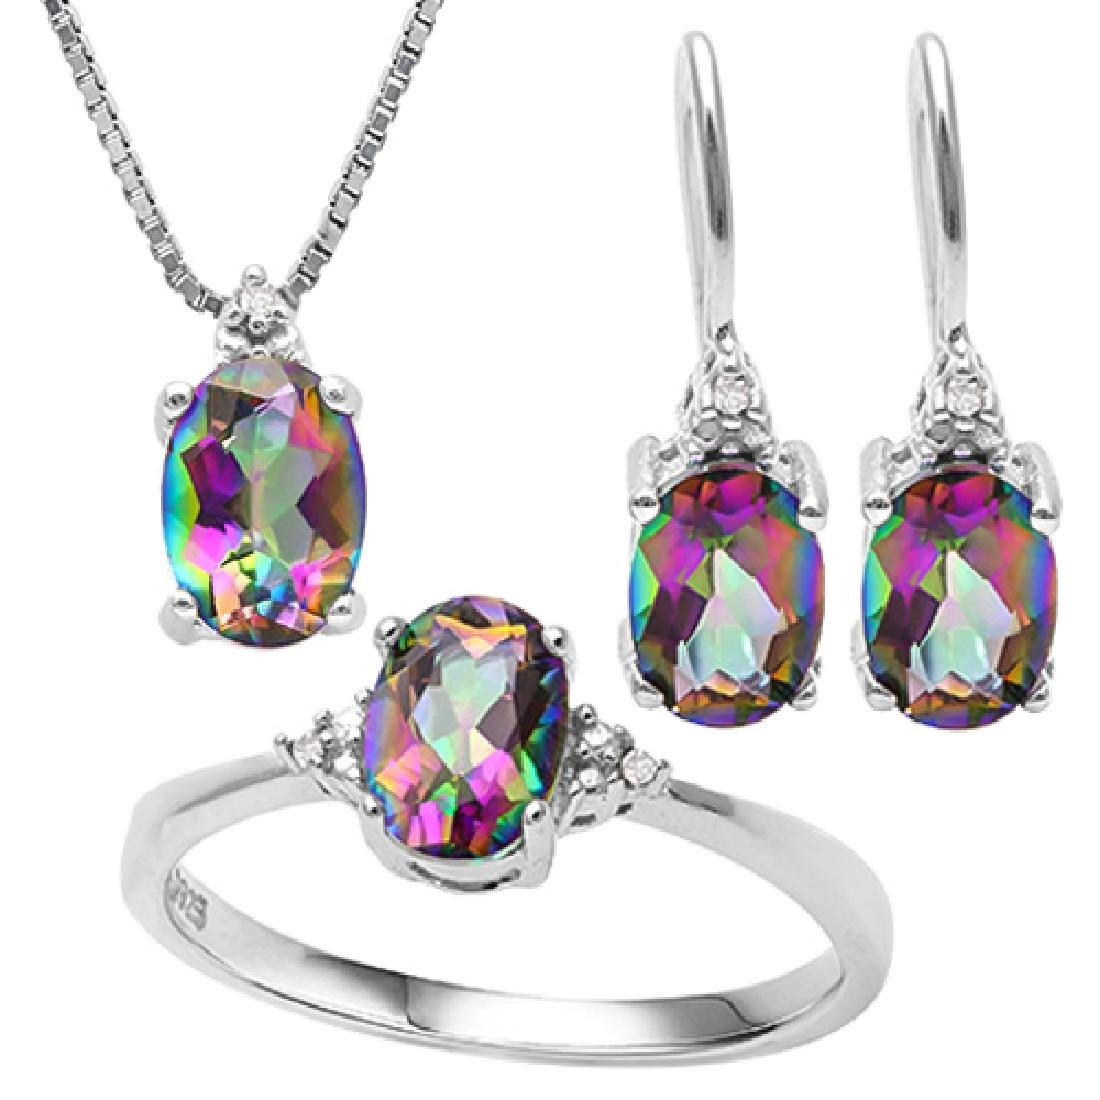 2 CARAT OCEAN RAINBOW MYSTIC GEMSTONE & (15 PCS) DIAMON